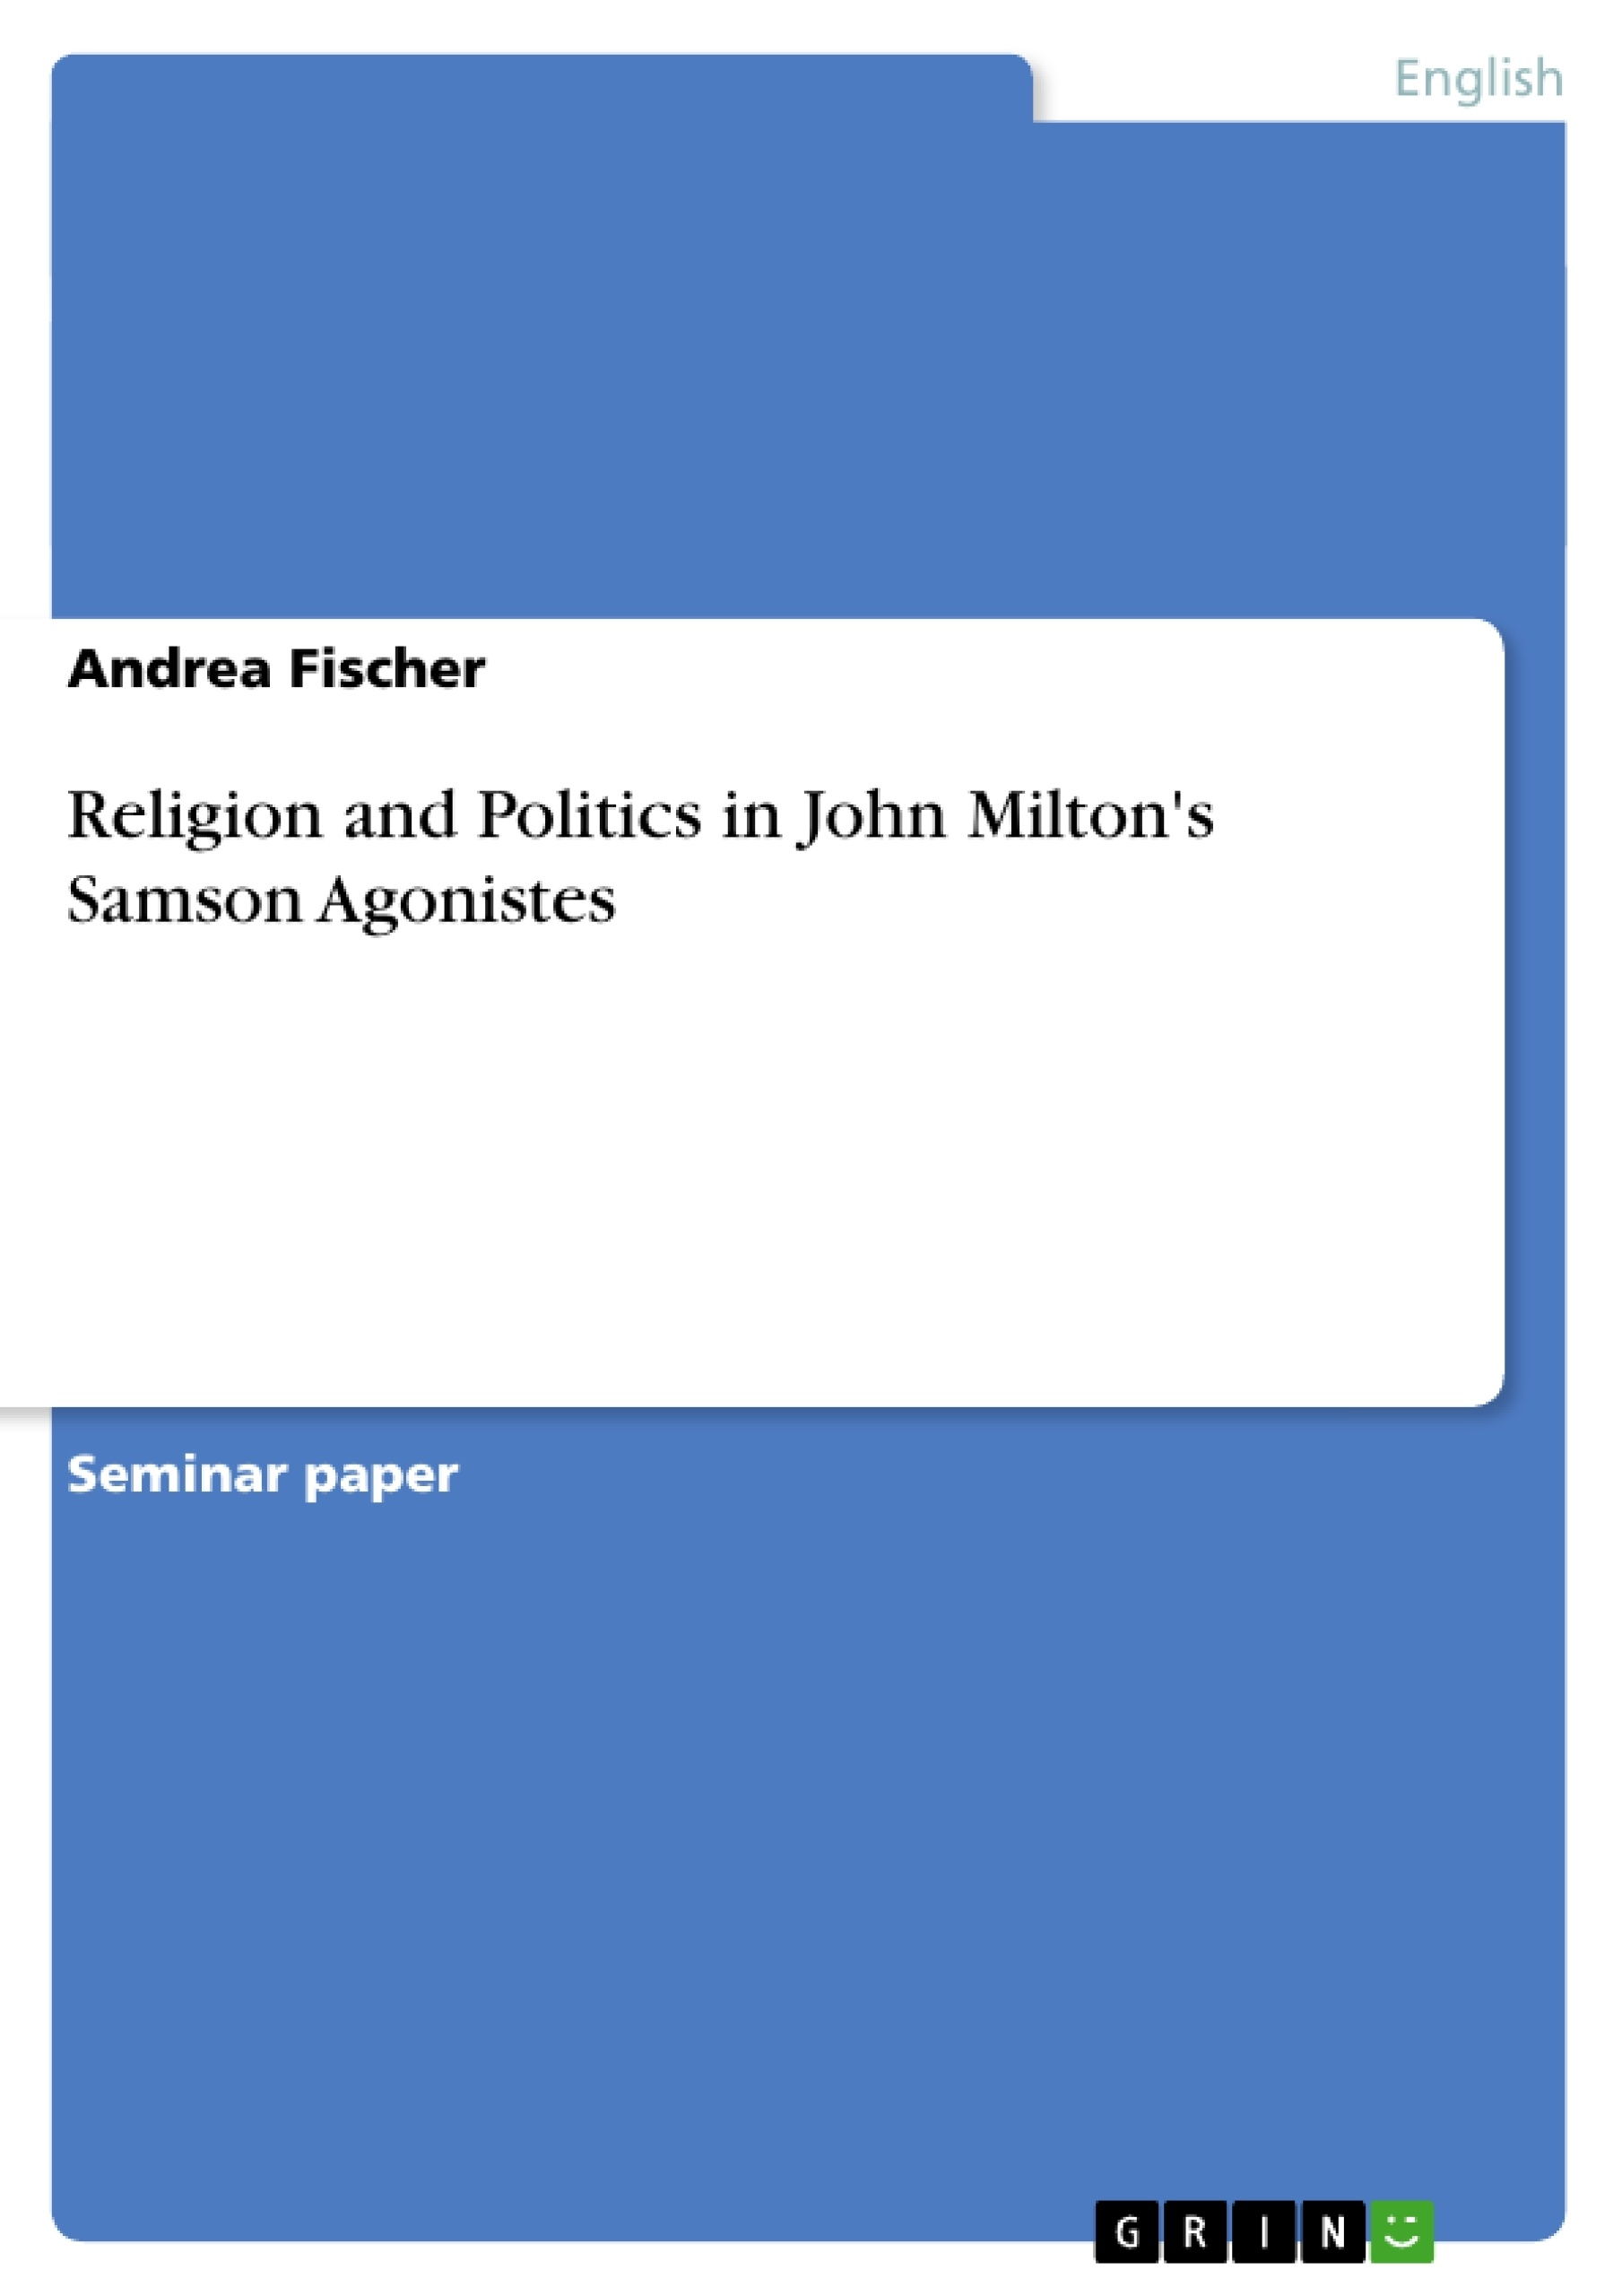 religion and politics essay essay on religion and politics in  religion and politics in john milton s samson agonistes publish religion and politics in john milton